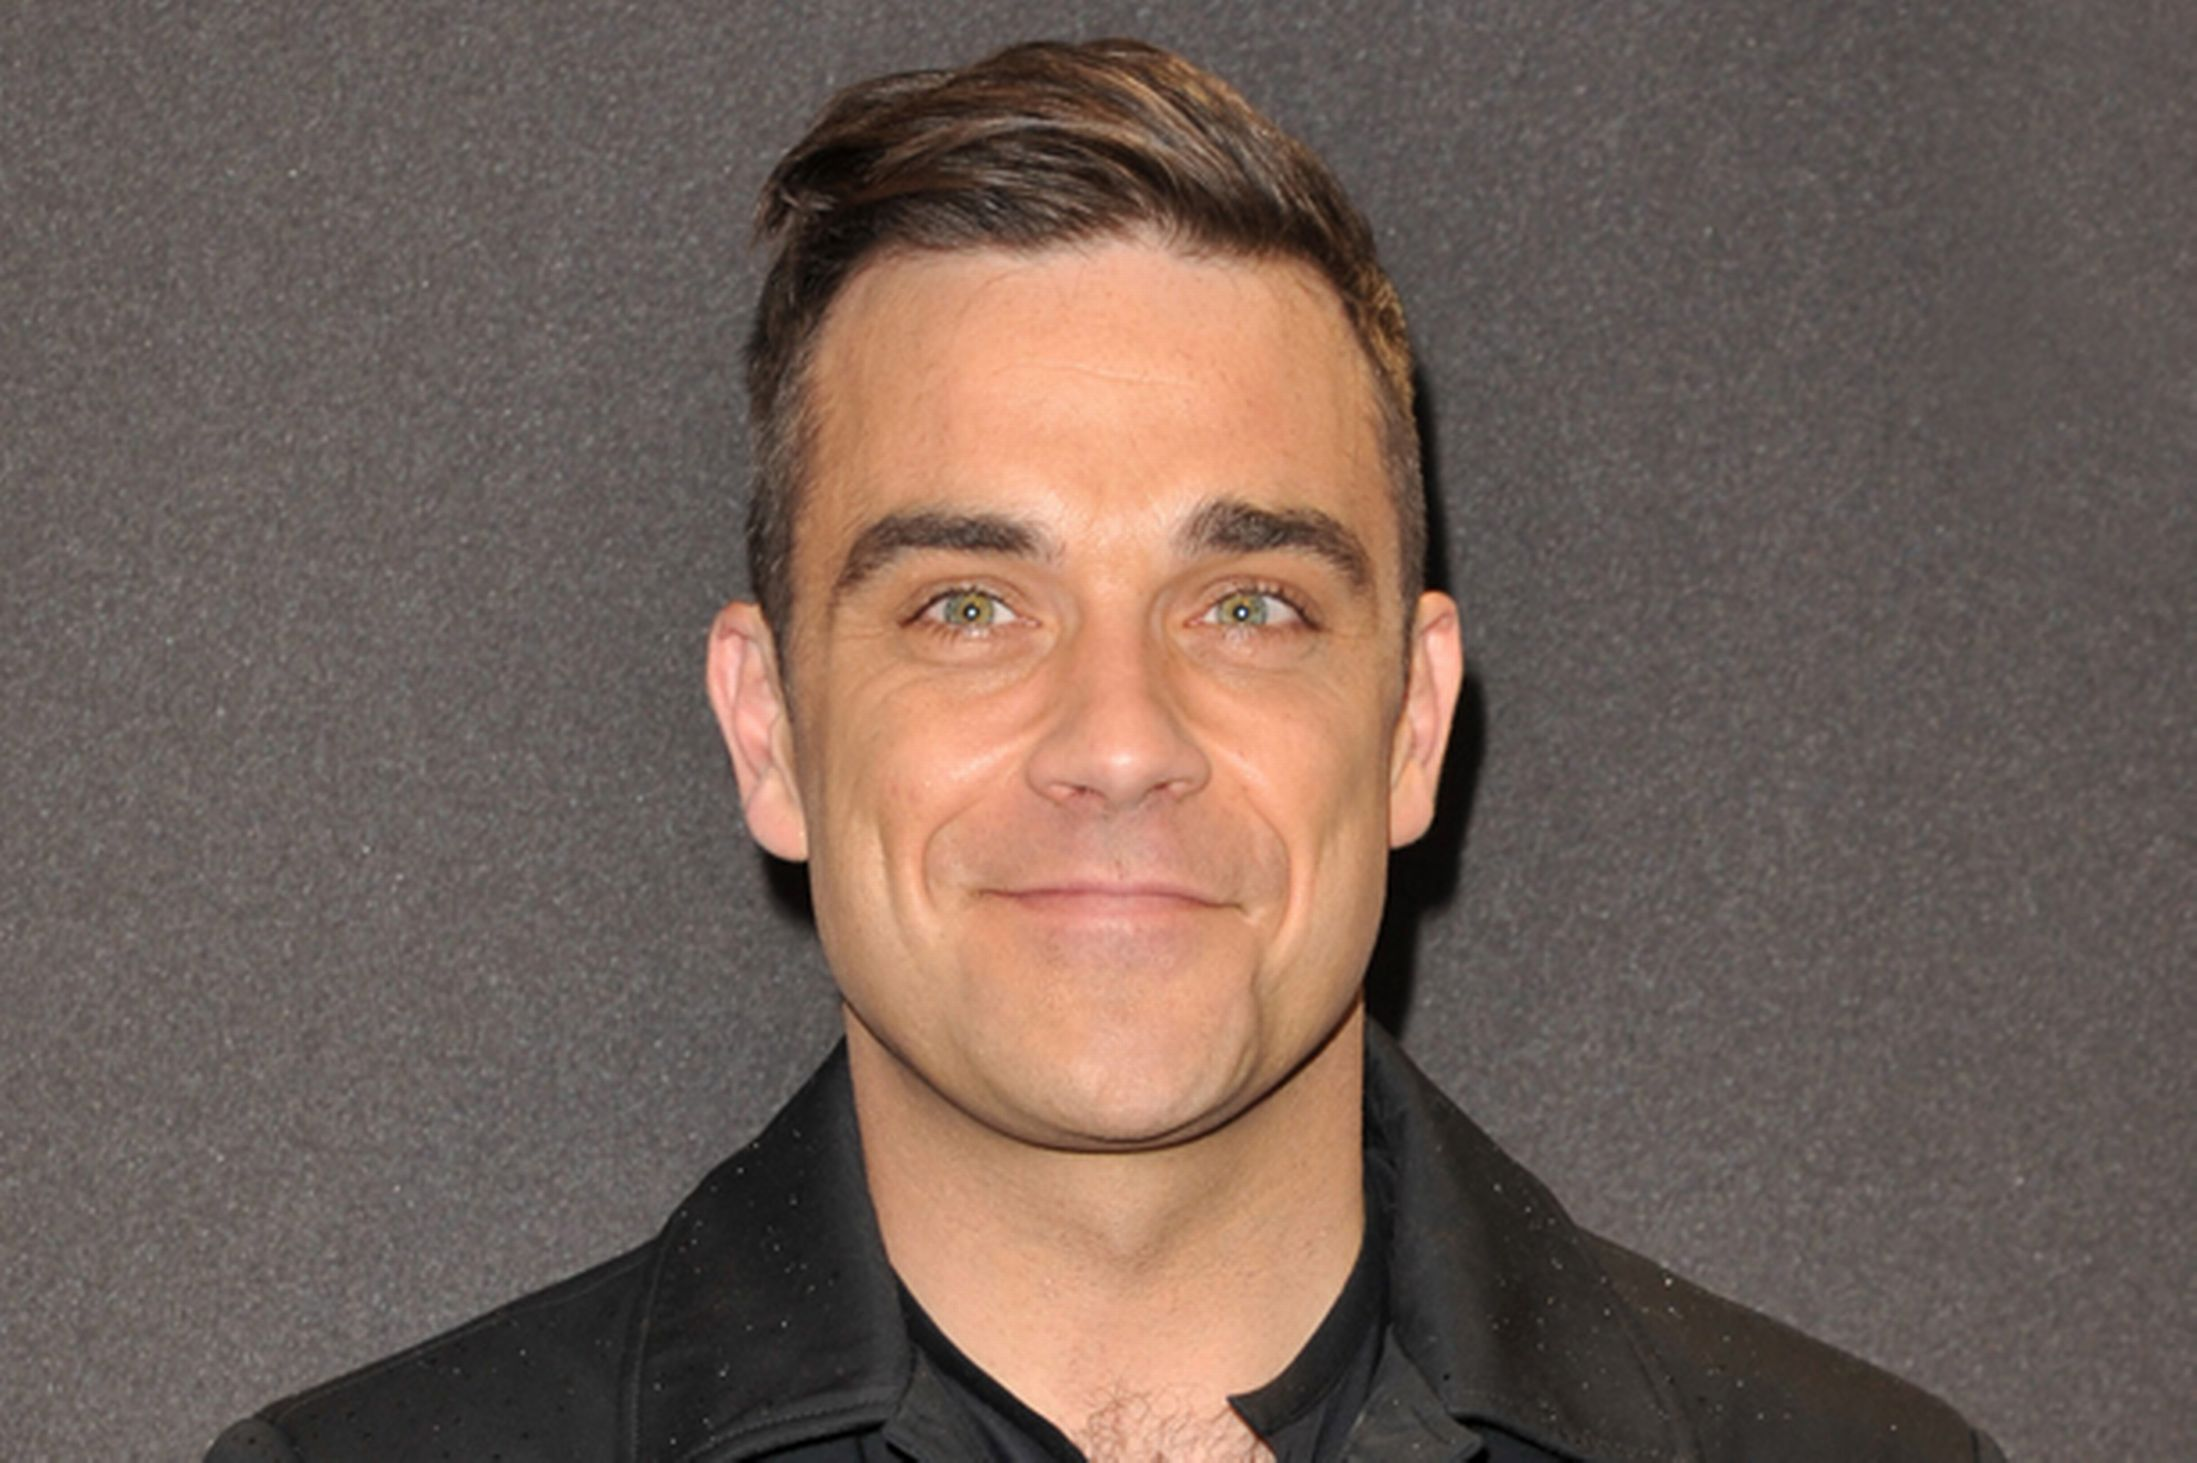 Robbie Williams nuovo album 2016